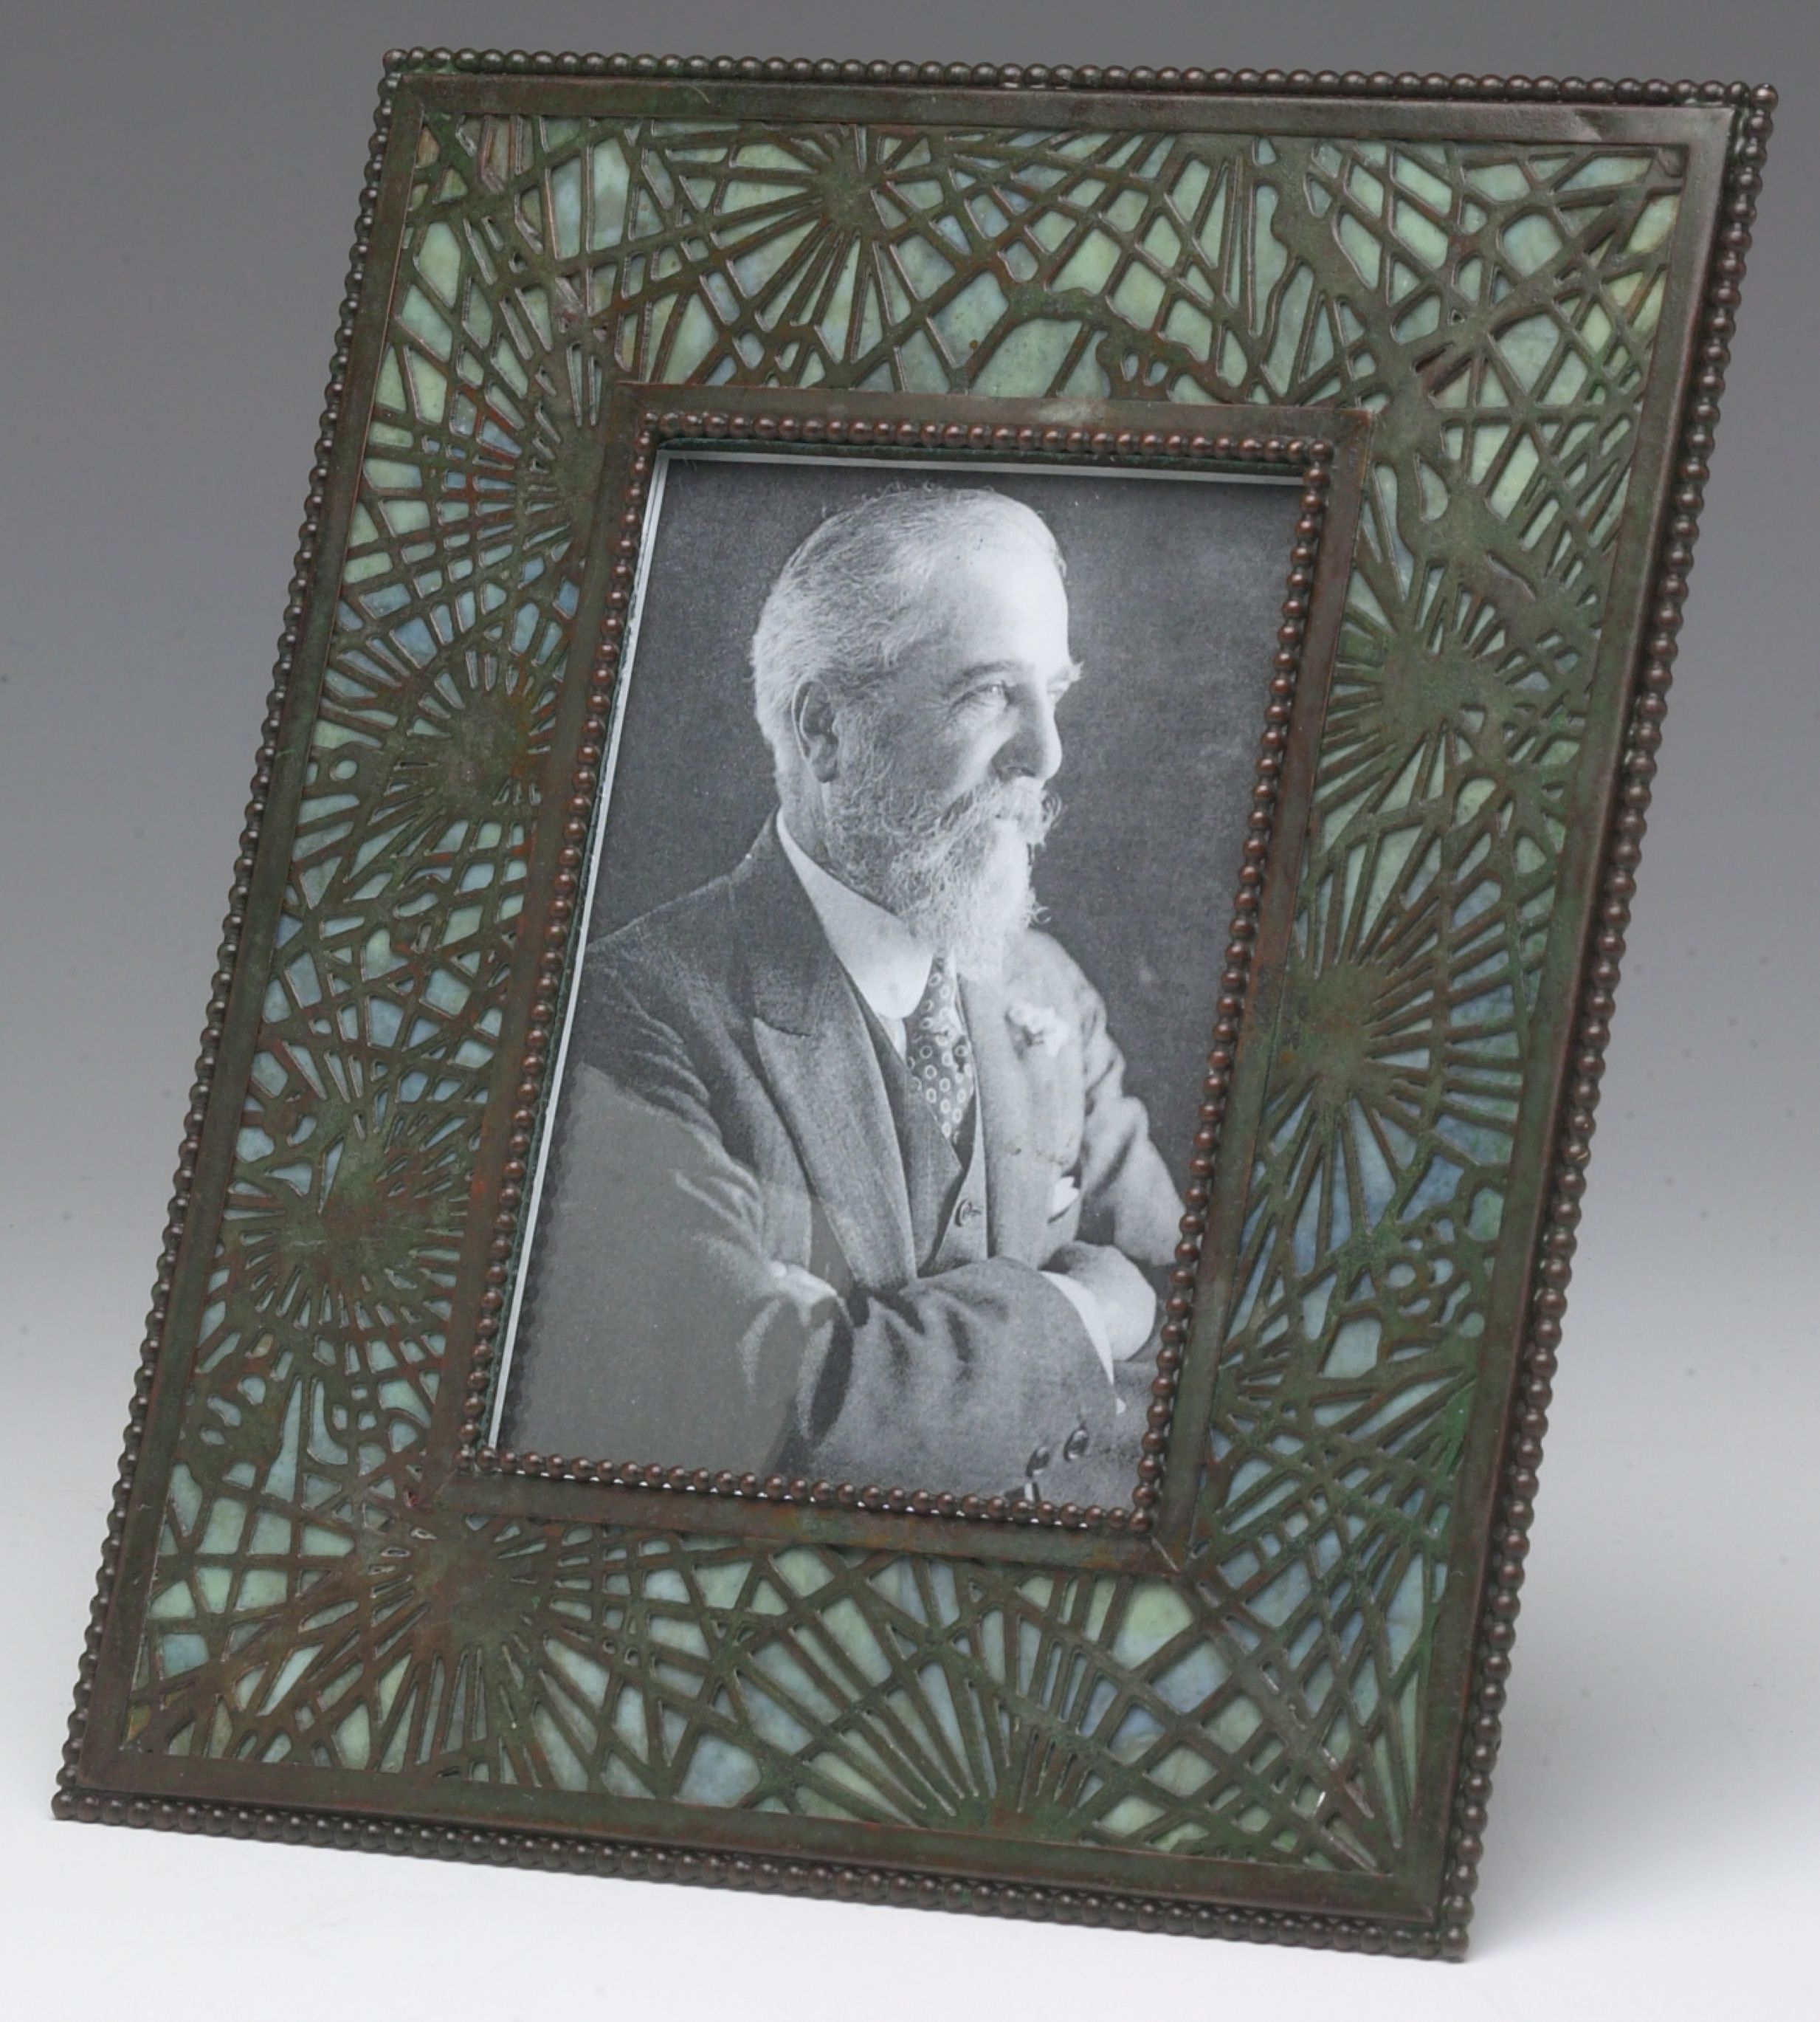 A tiffany studios pineneedle pattern picture frame circa 1910 a tiffany studios pineneedle pattern picture frame circa 1910 provenance treadway gallery a tiffany studios etched metal glass picture frame jeuxipadfo Image collections